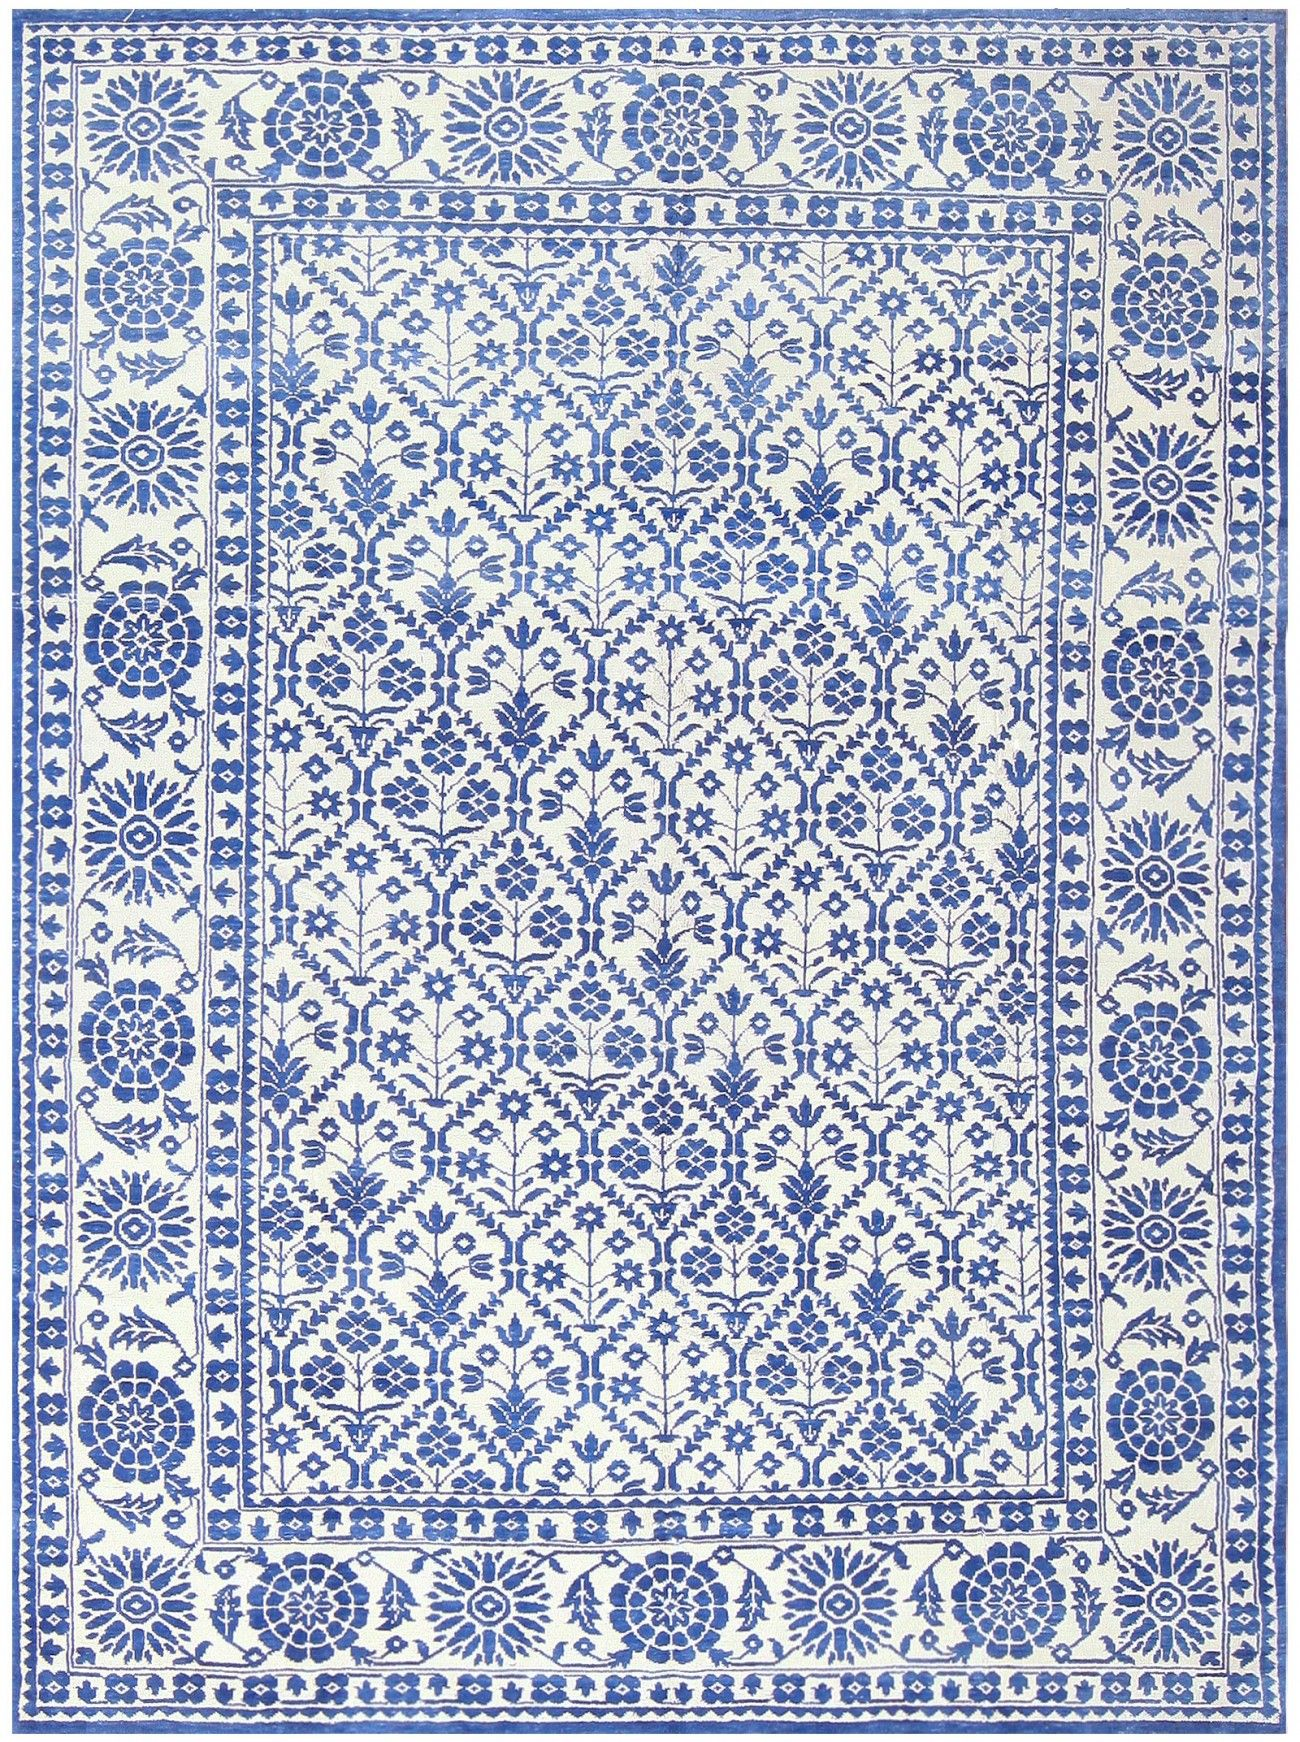 Blue And White Vintage Indian Agra Cotton Rug 48300 By Nazmiyal Rugs